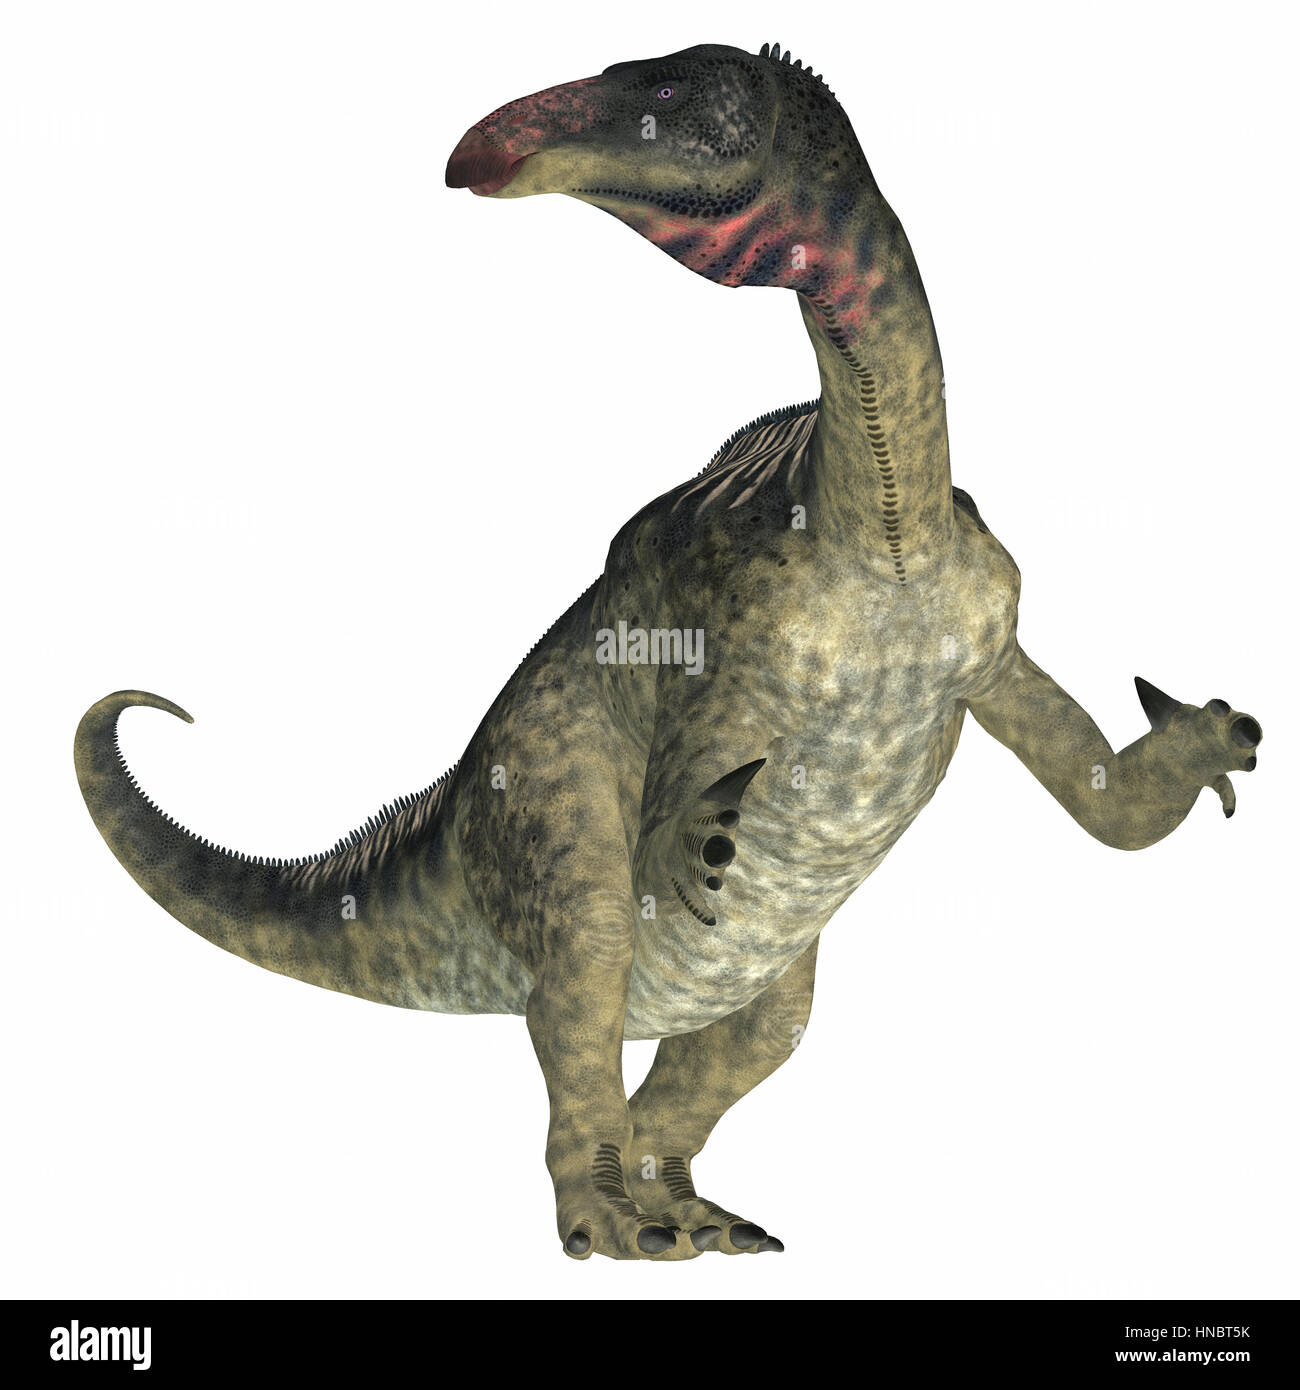 Lurdusaurus was a herbivorous ornithopod iguanodont dinosaur that lived in Niger in the Cretaceous Period. - Stock Image